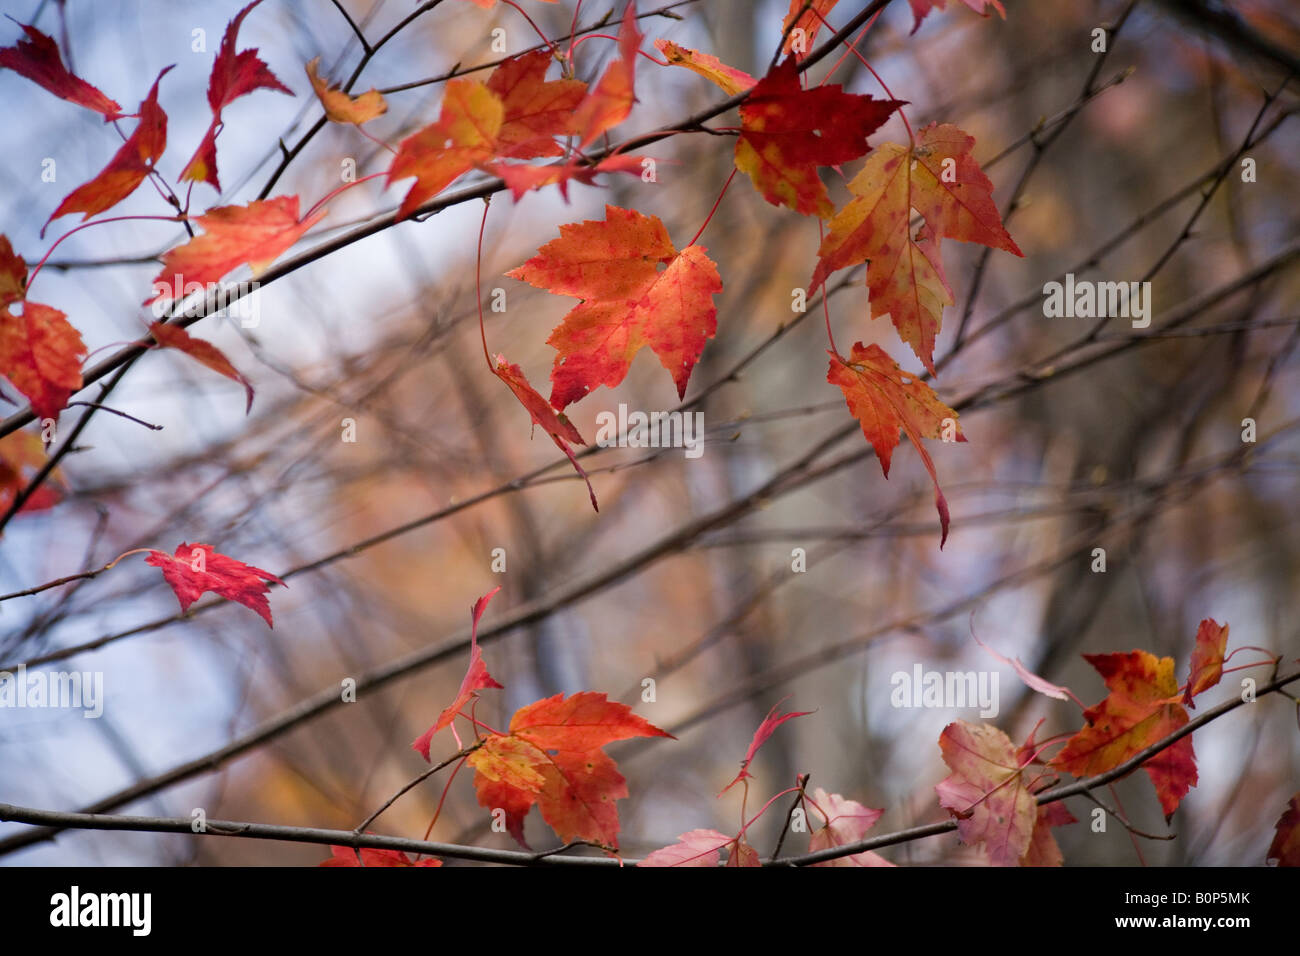 Photo of red maple leafs hanging in the tree branches - Stock Image